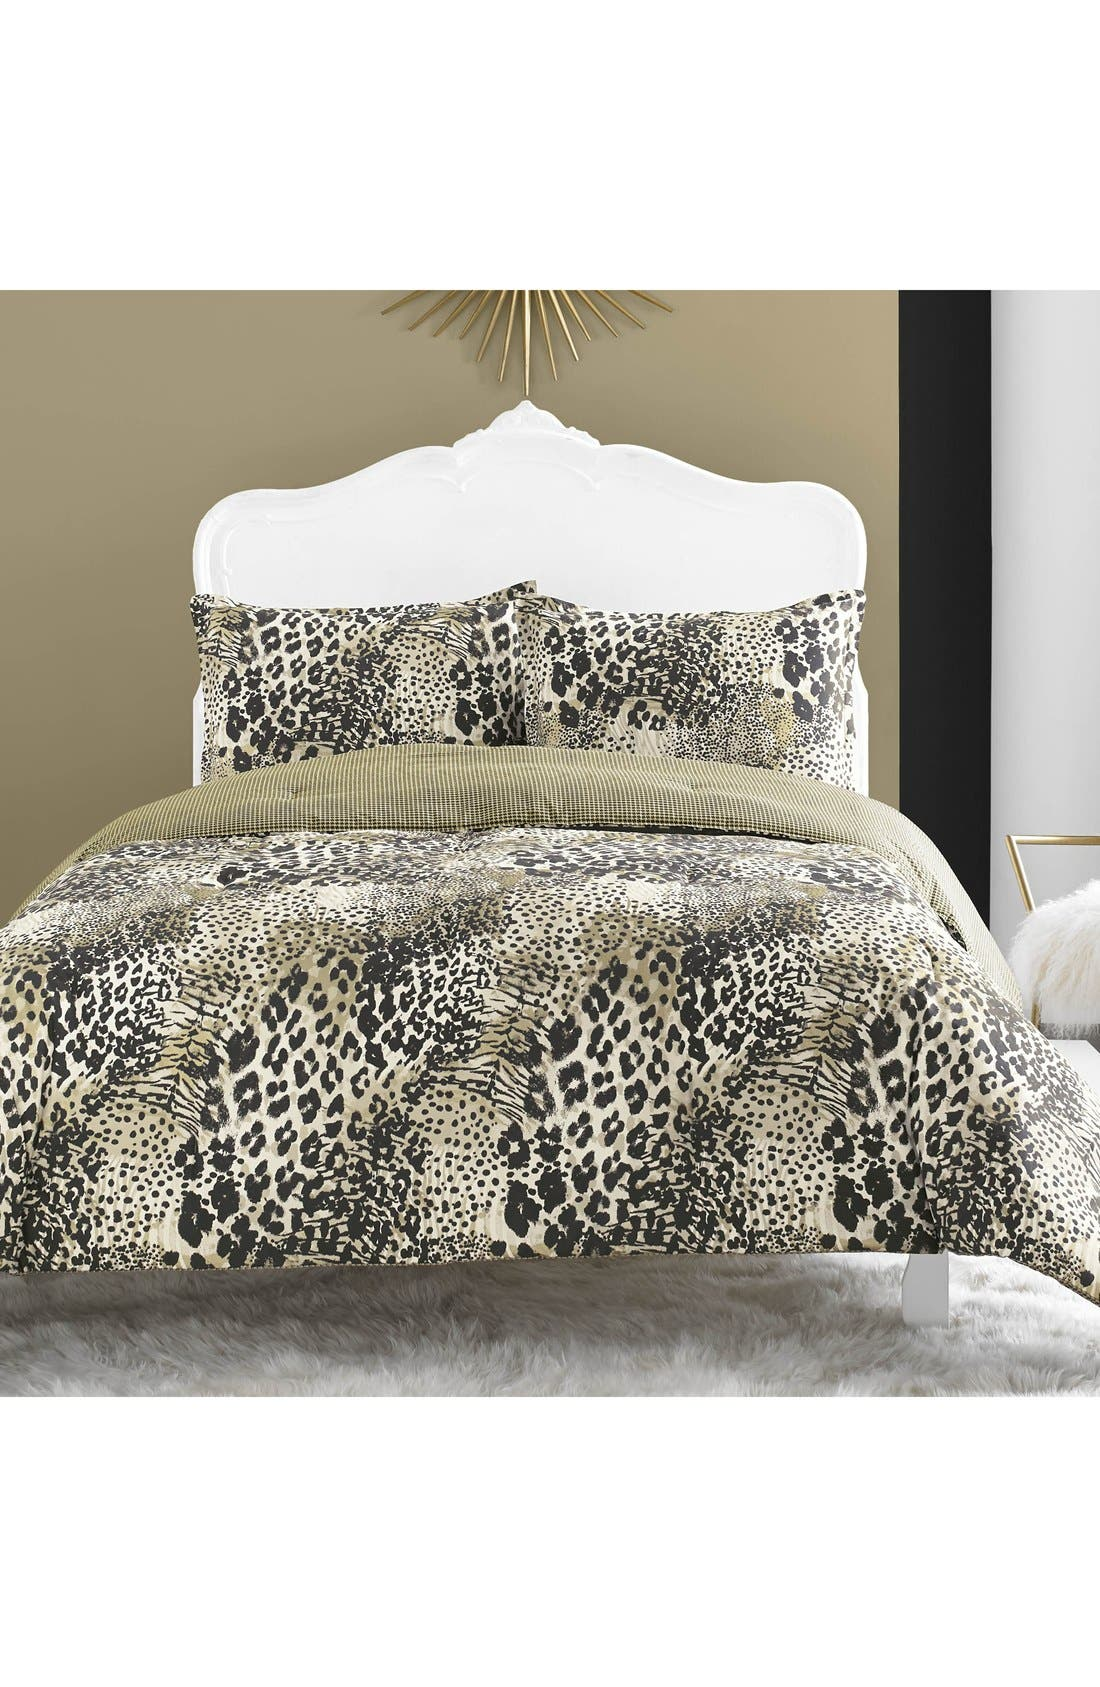 betsey johnson bedding 'wild thing' comforter set | nordstrom